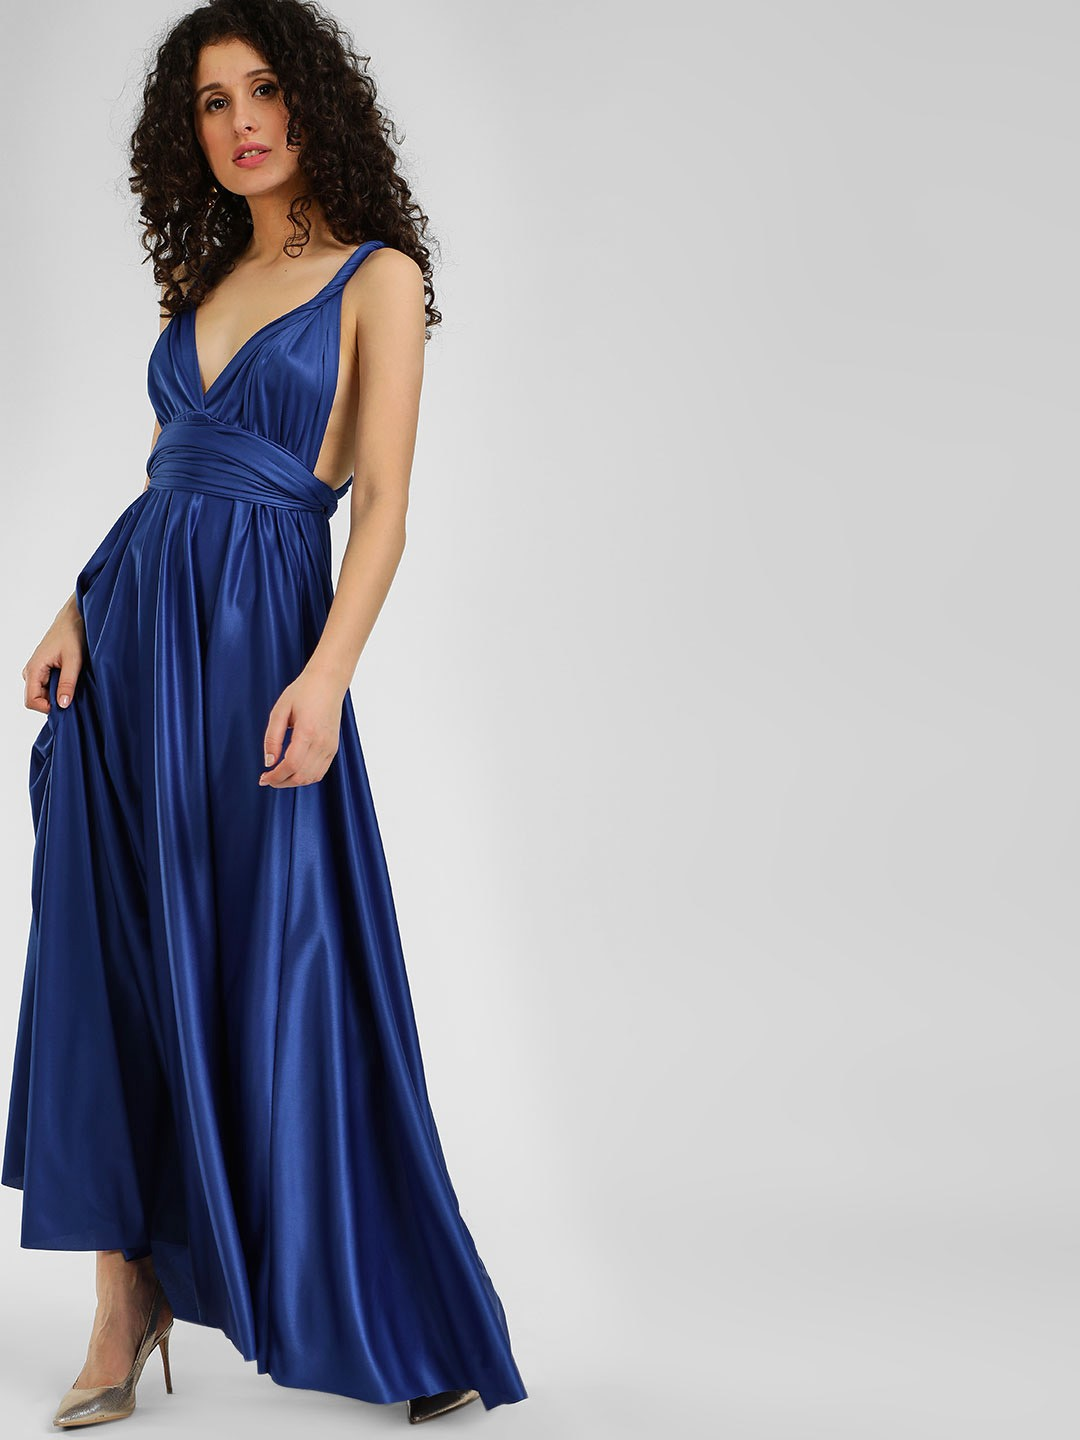 Origami Lily Blue Infinity Wrap Maxi Dress 1